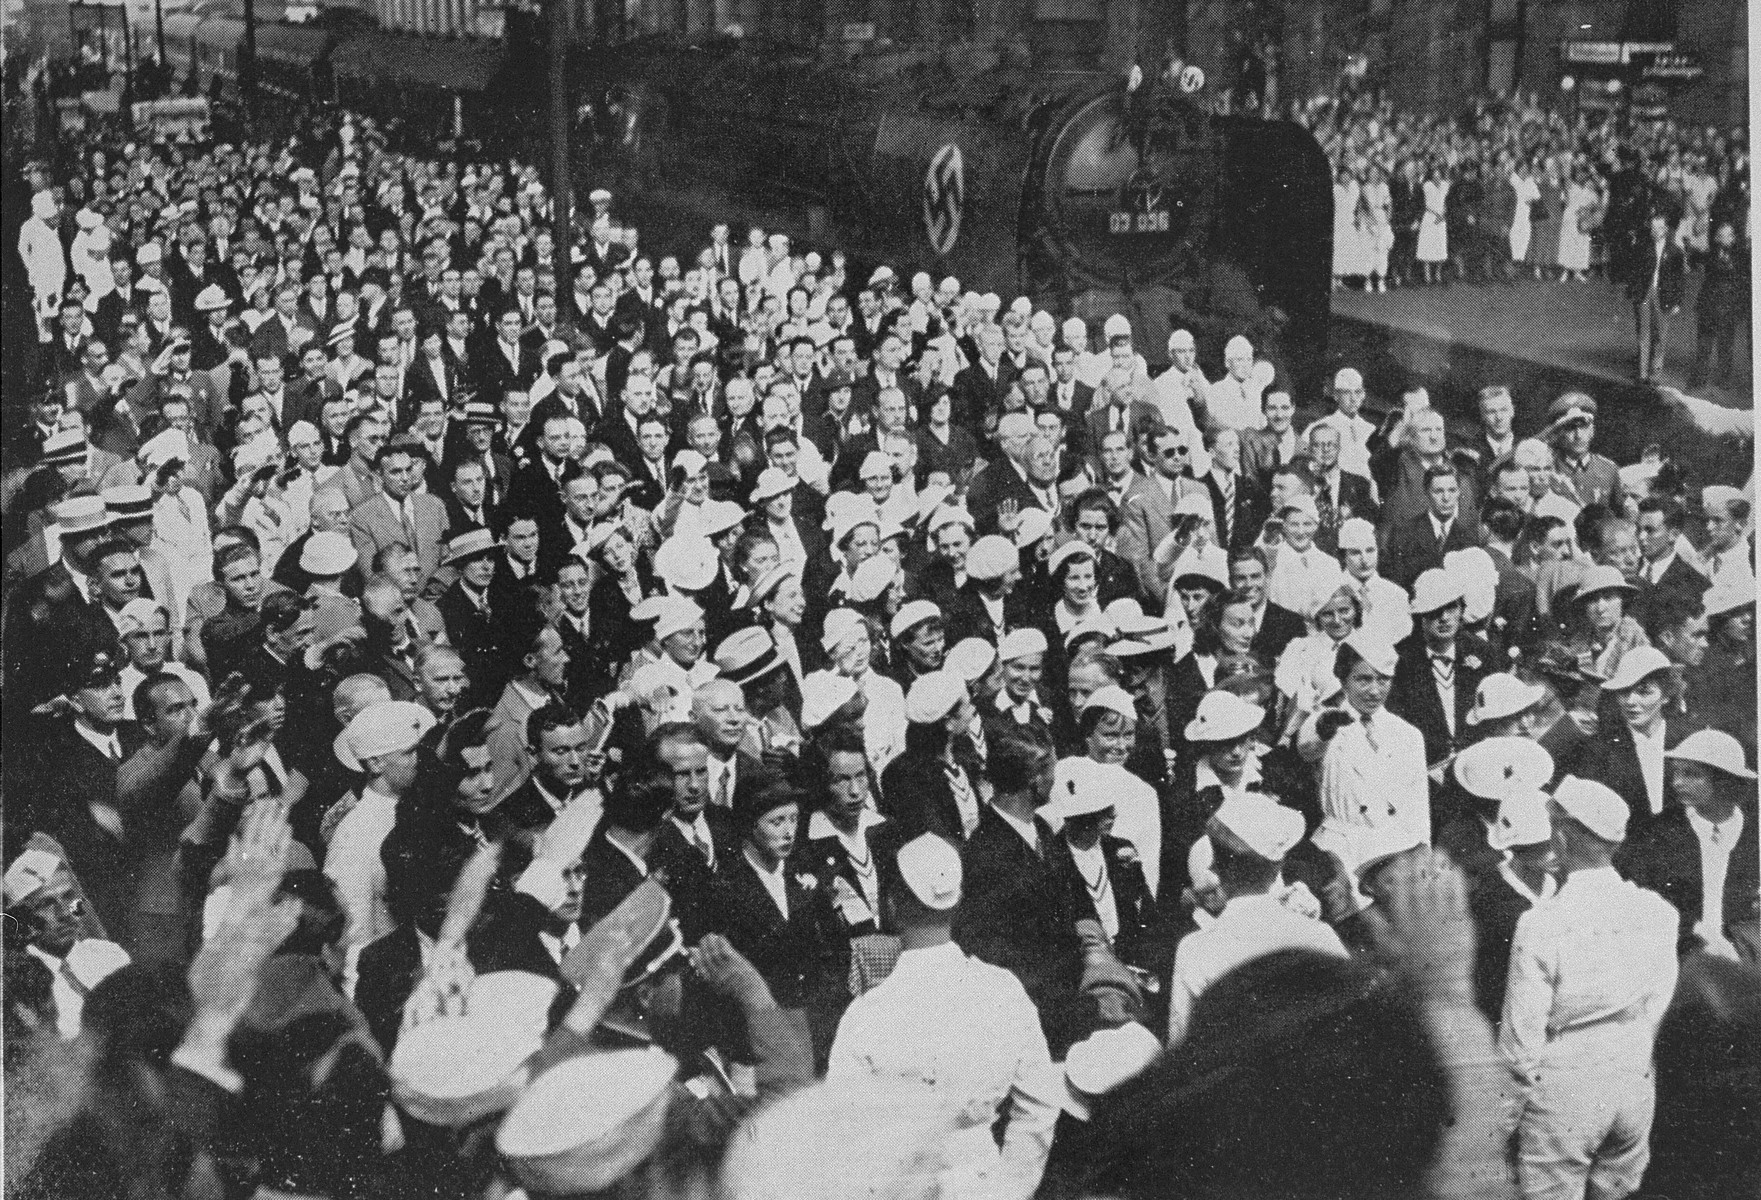 The U.S. Olympic team arrives at the railroad station in Berlin.